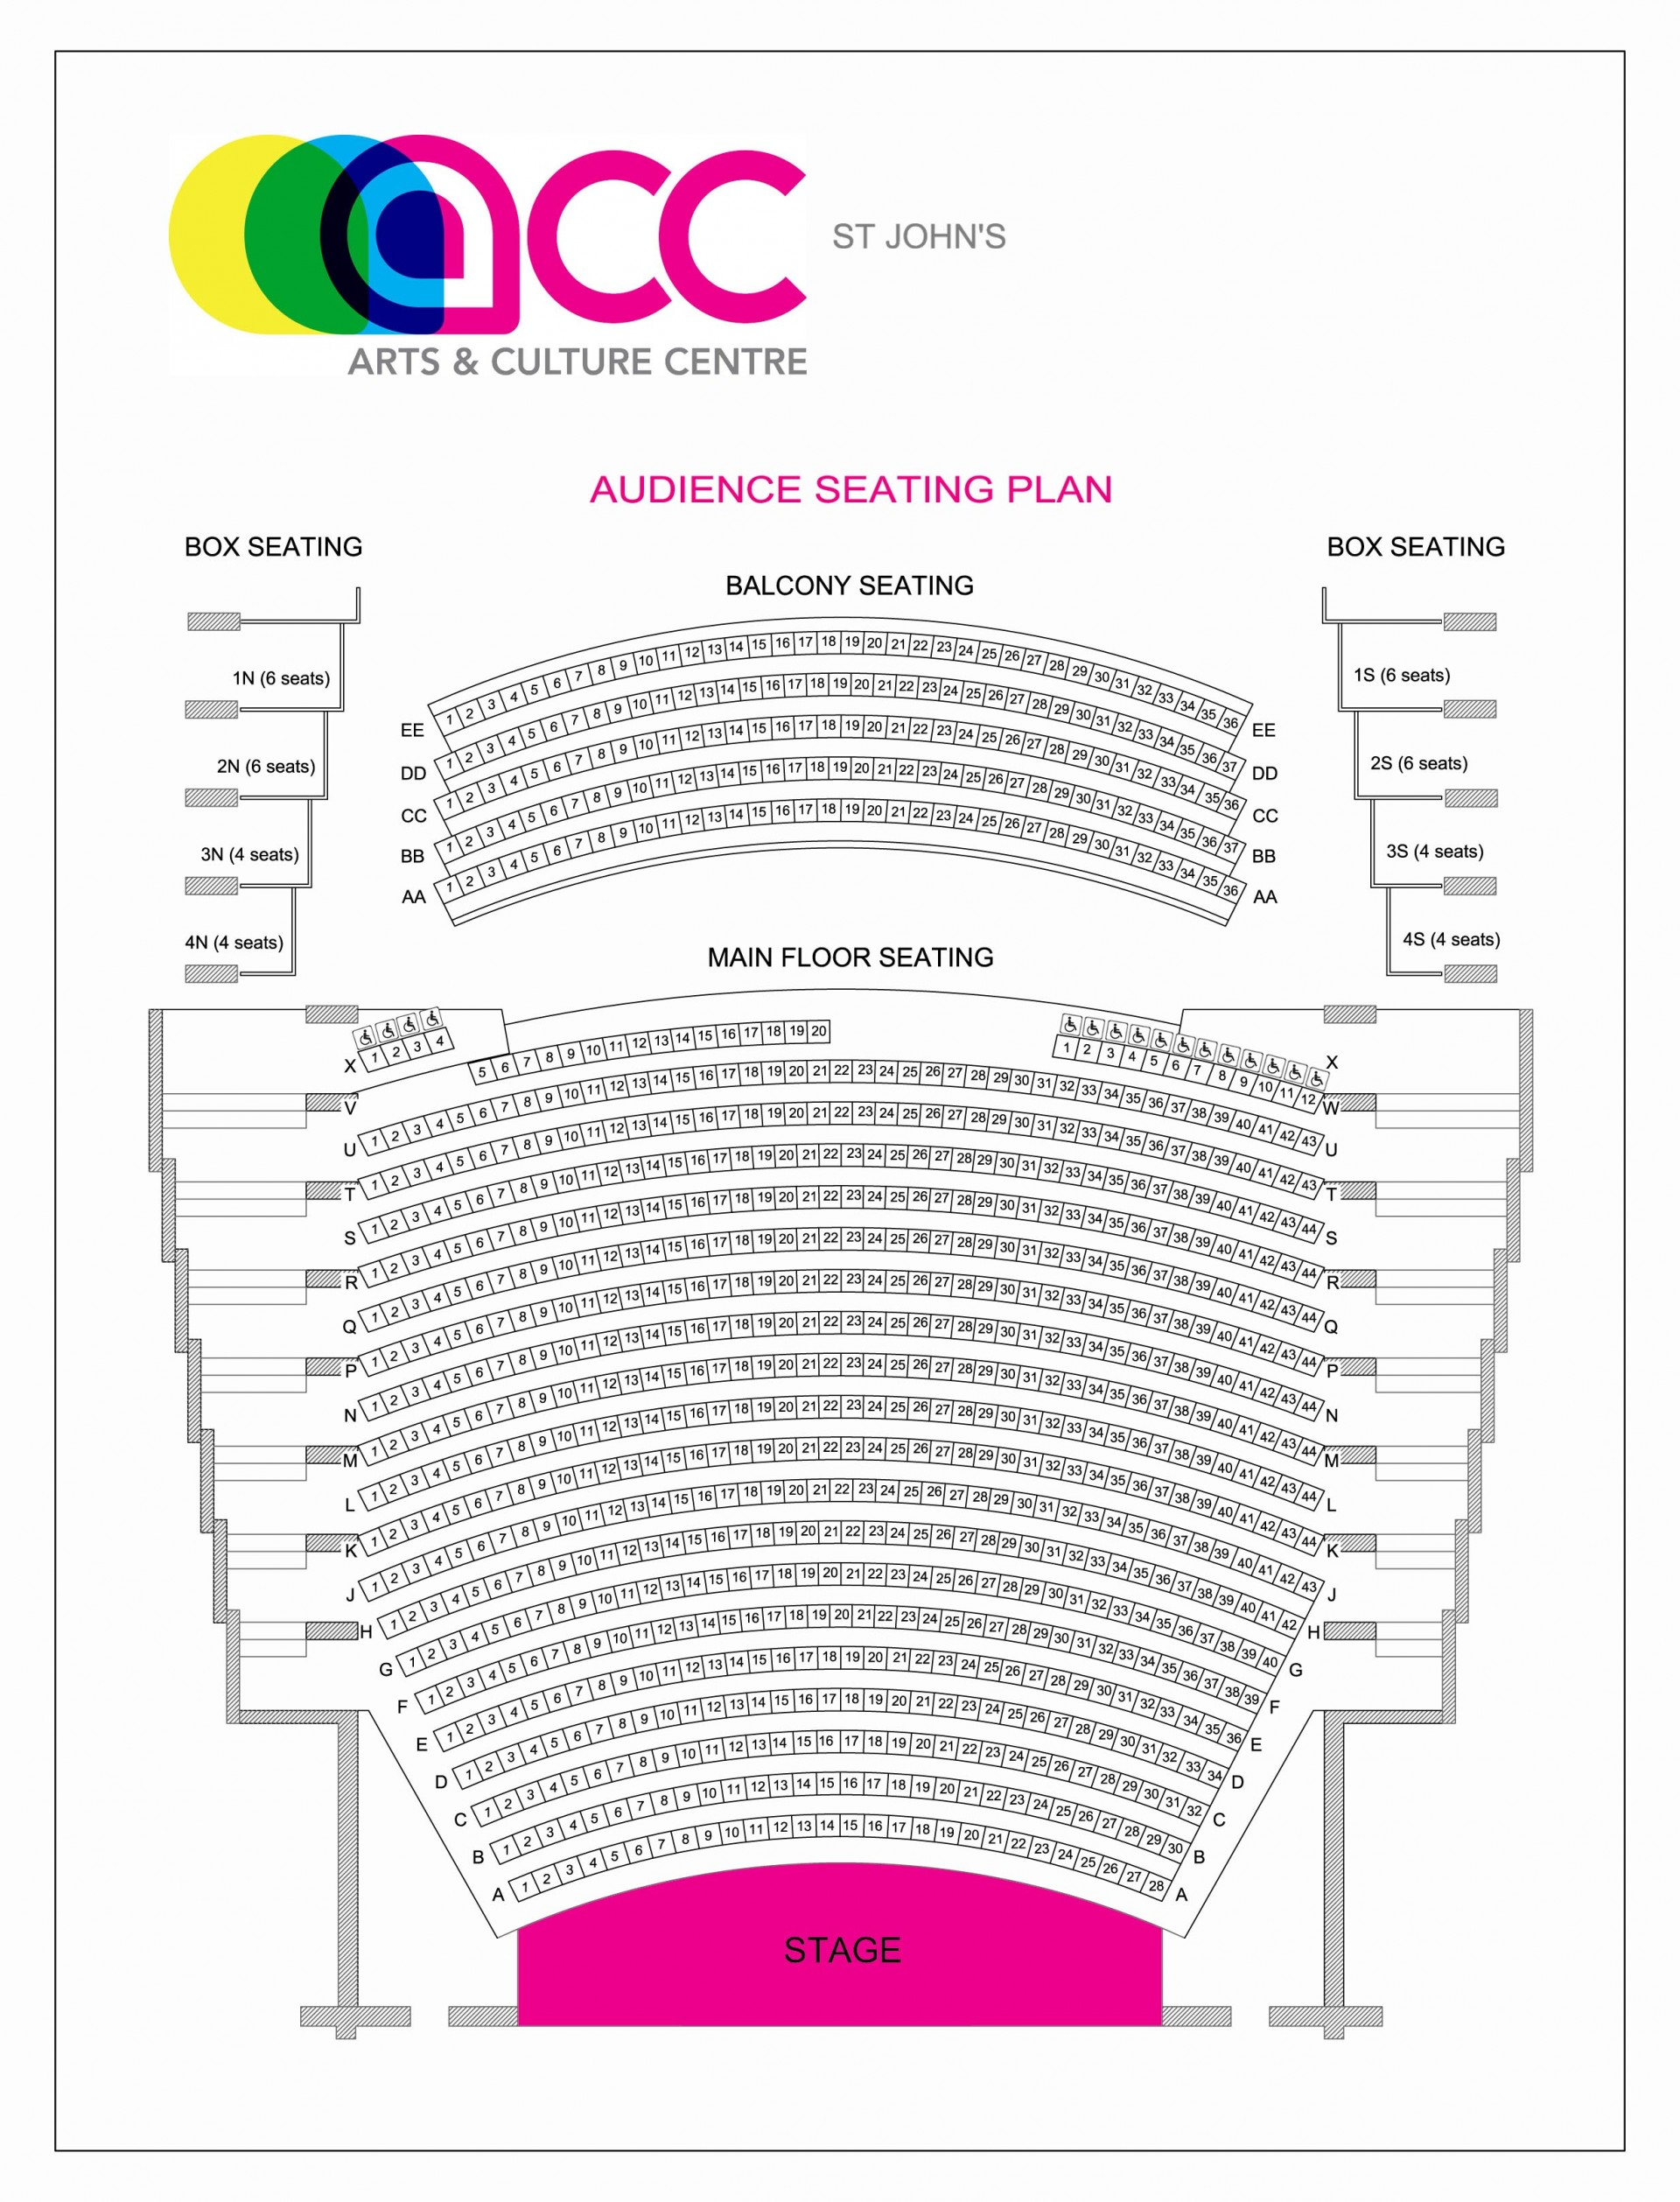 026 Acc St20johns Audience20seating20plan Jan2019 Essay Example Vcu Personal Remarkable Statement 1920